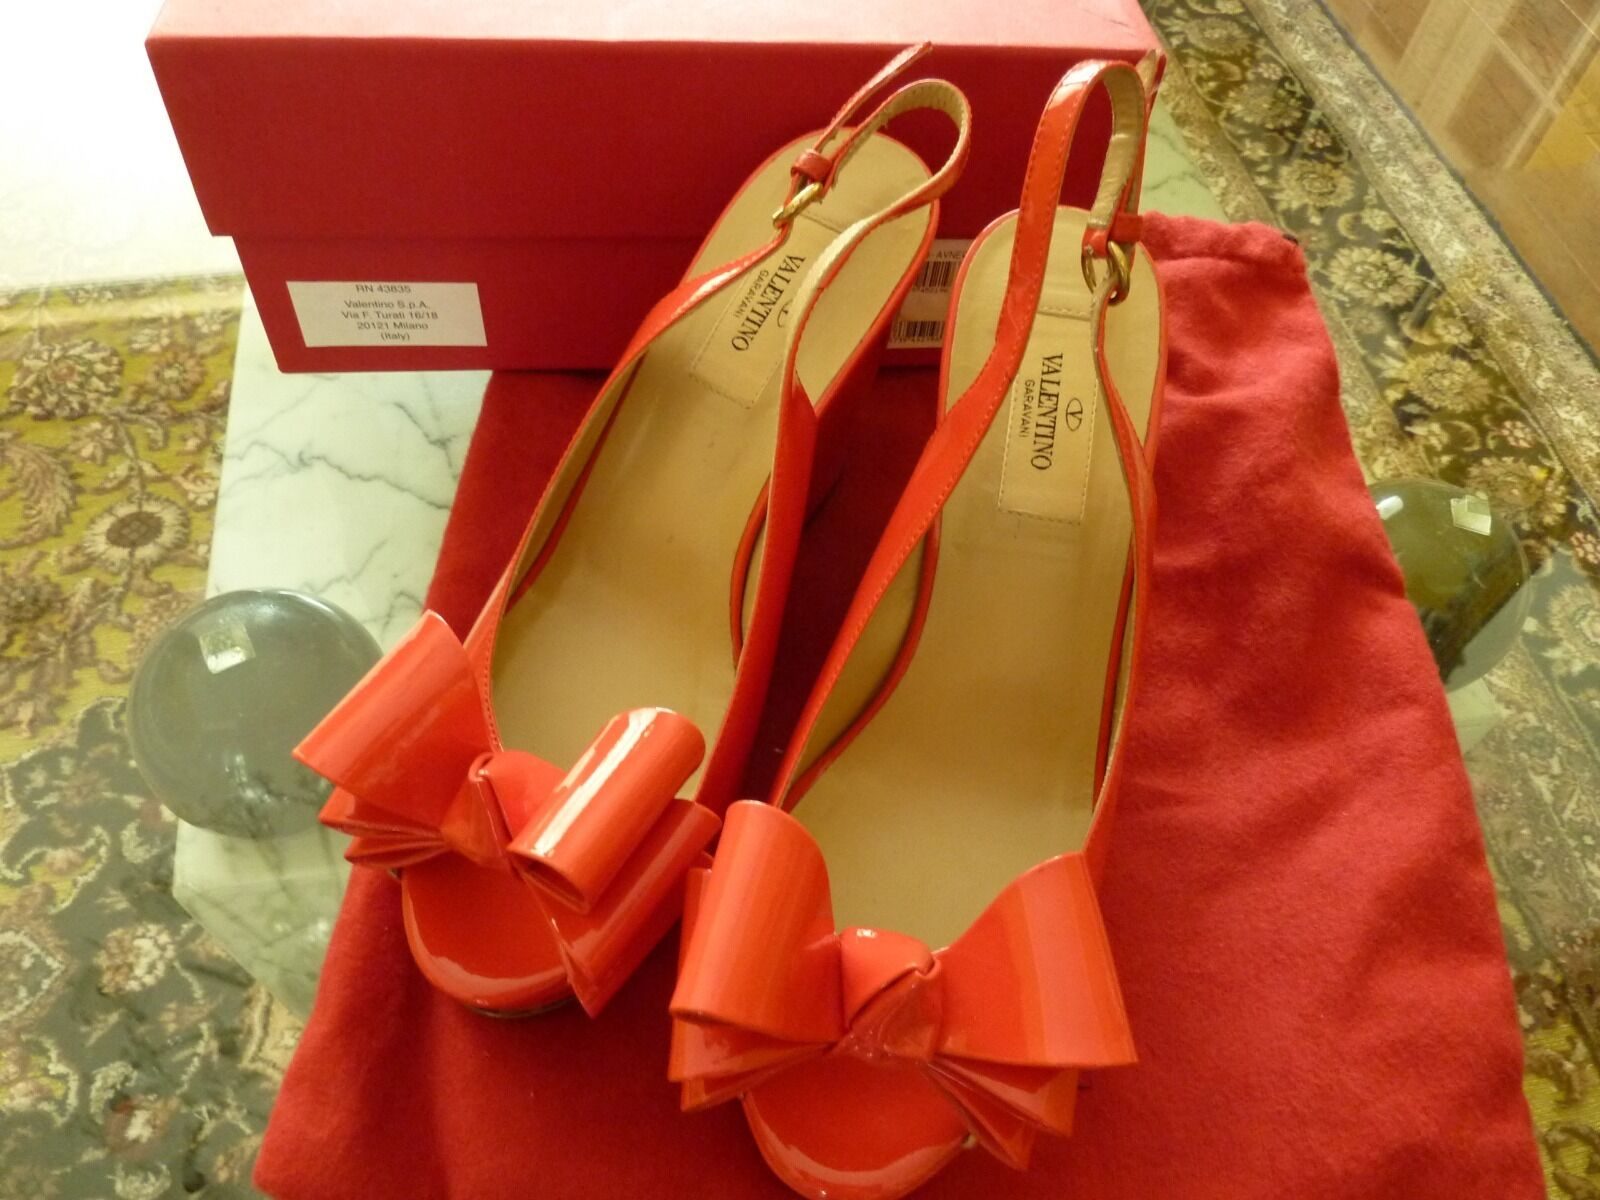 VALENTINO Garavani $795 Wedges Shoes Sz. 37 7B Red Bow Patent Leather NEW Box